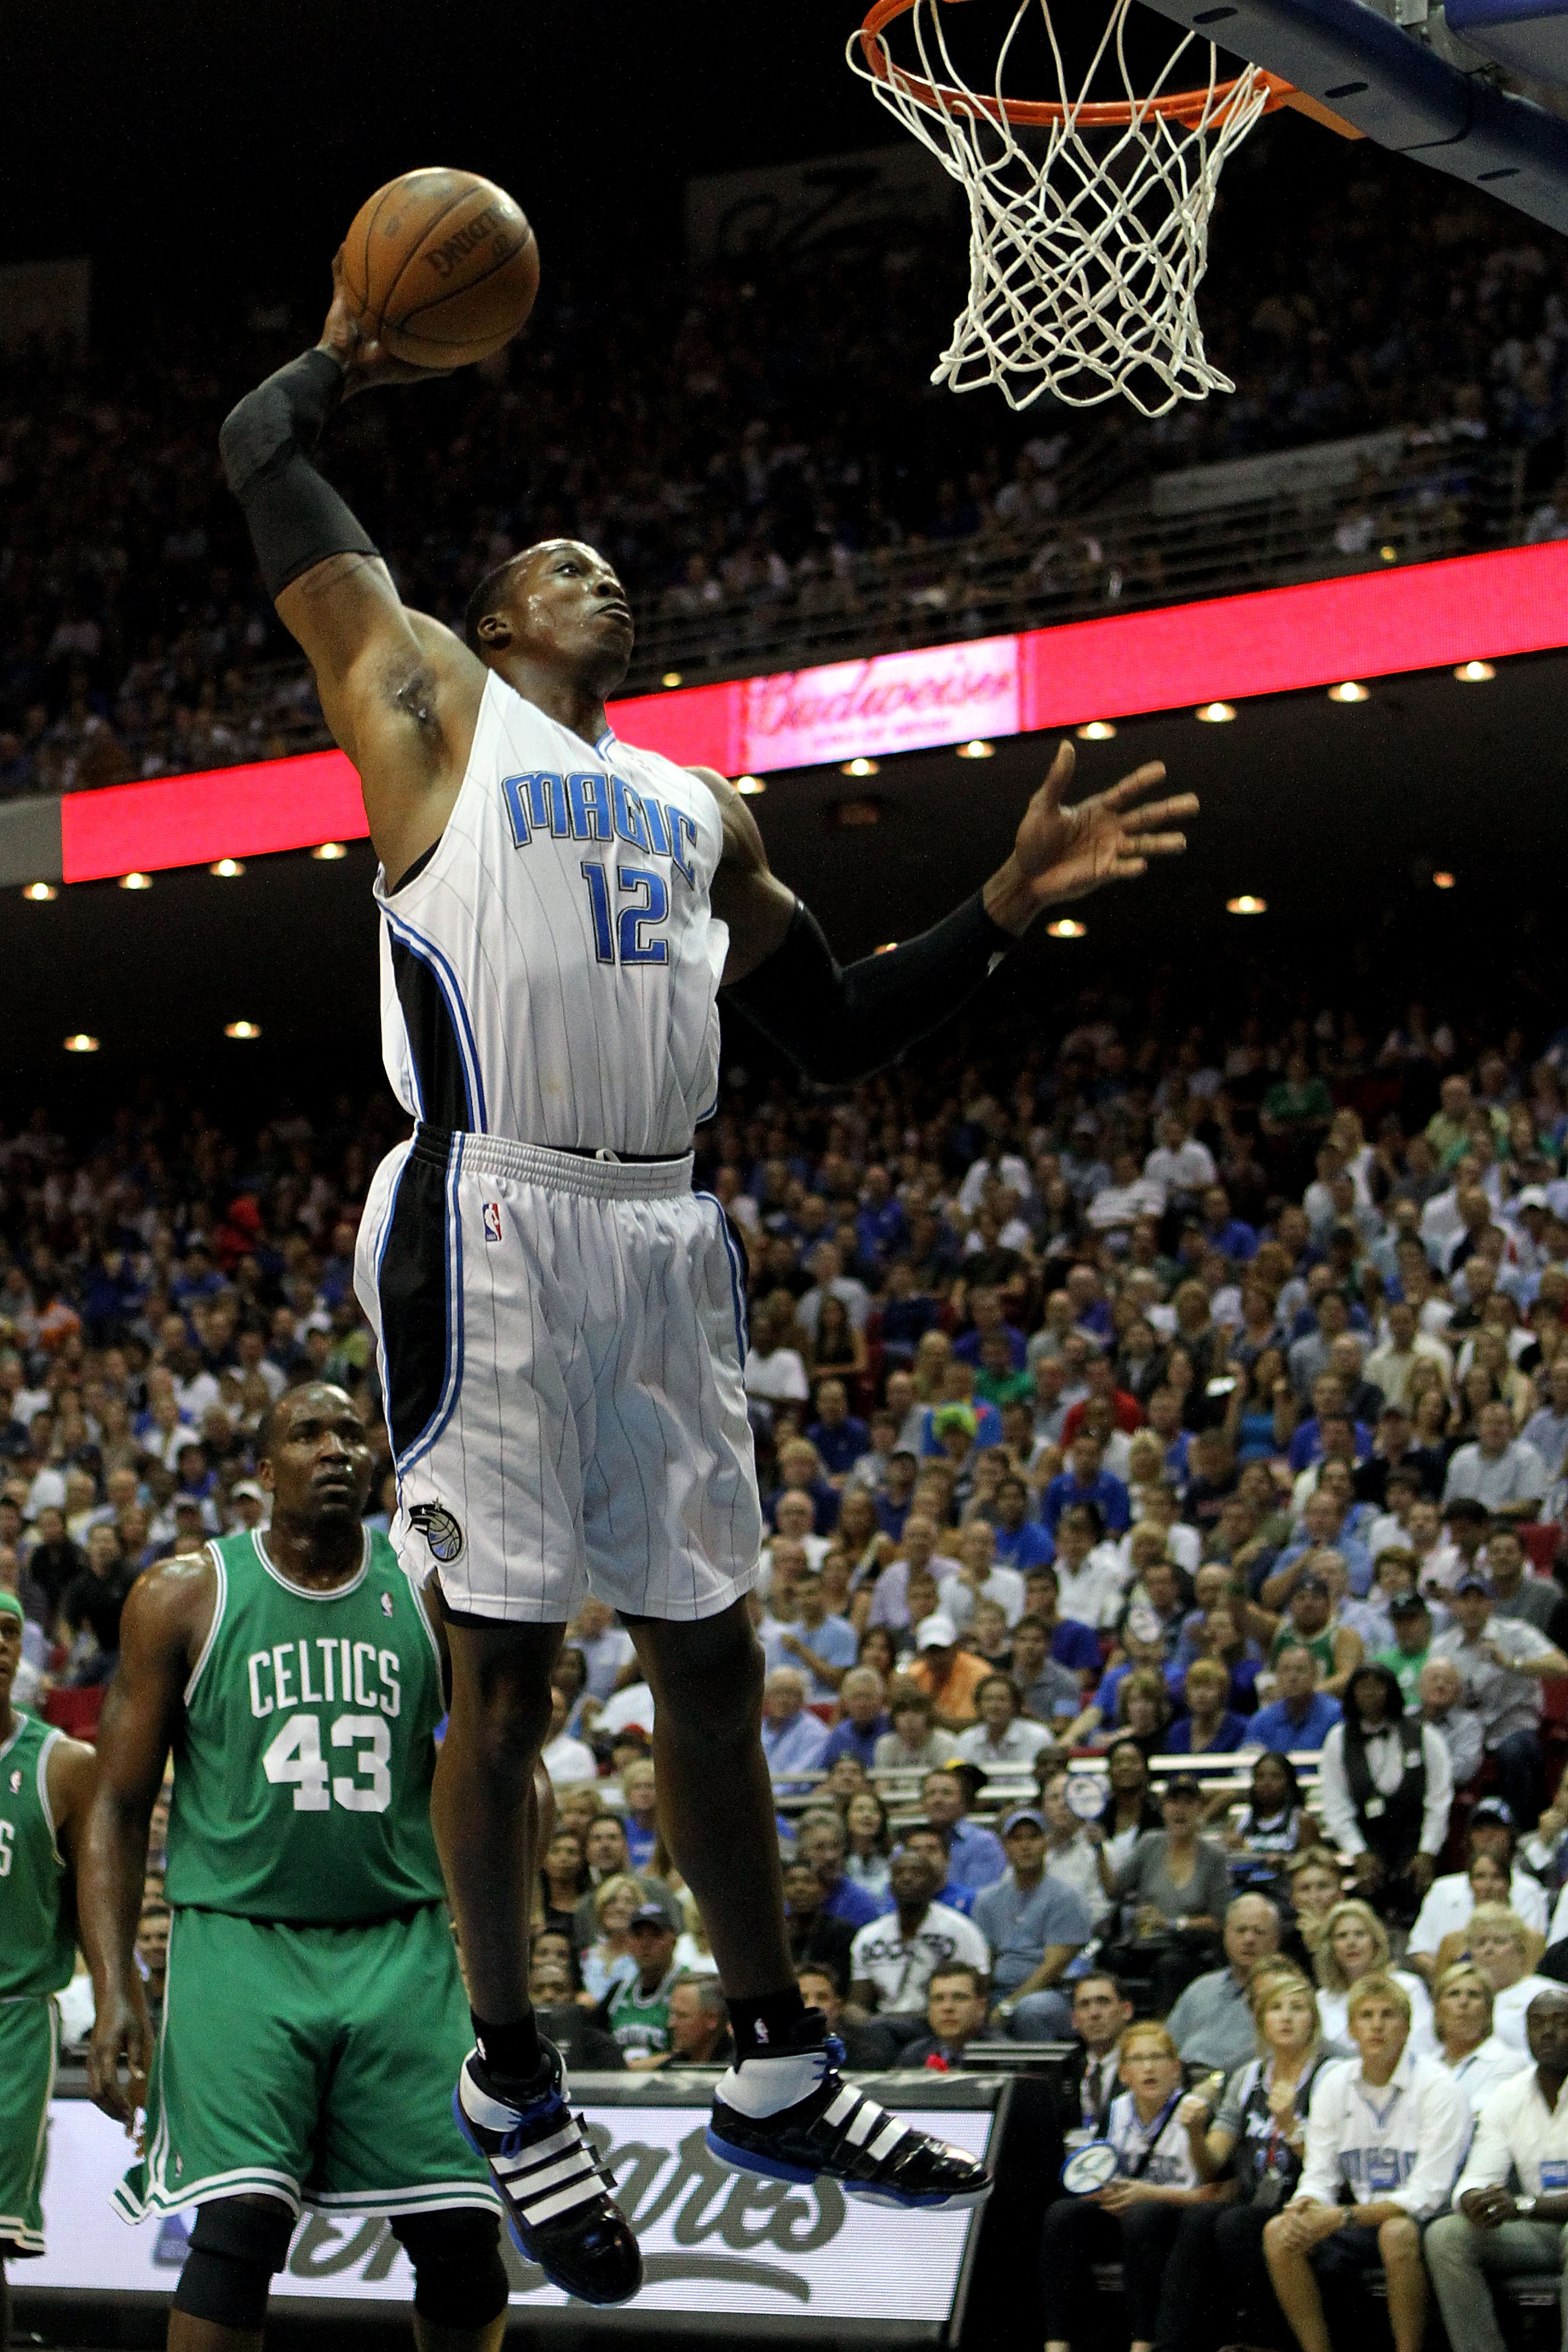 ORLANDO, FL - MAY 26:  Dwight Howard #12 of the Orlando Magic dunks against the Boston Celtics in Game Five of the Eastern Conference Finals during the 2010 NBA Playoffs at Amway Arena on May 26, 2010 in Orlando, Florida.  NOTE TO USER: User expressly ack